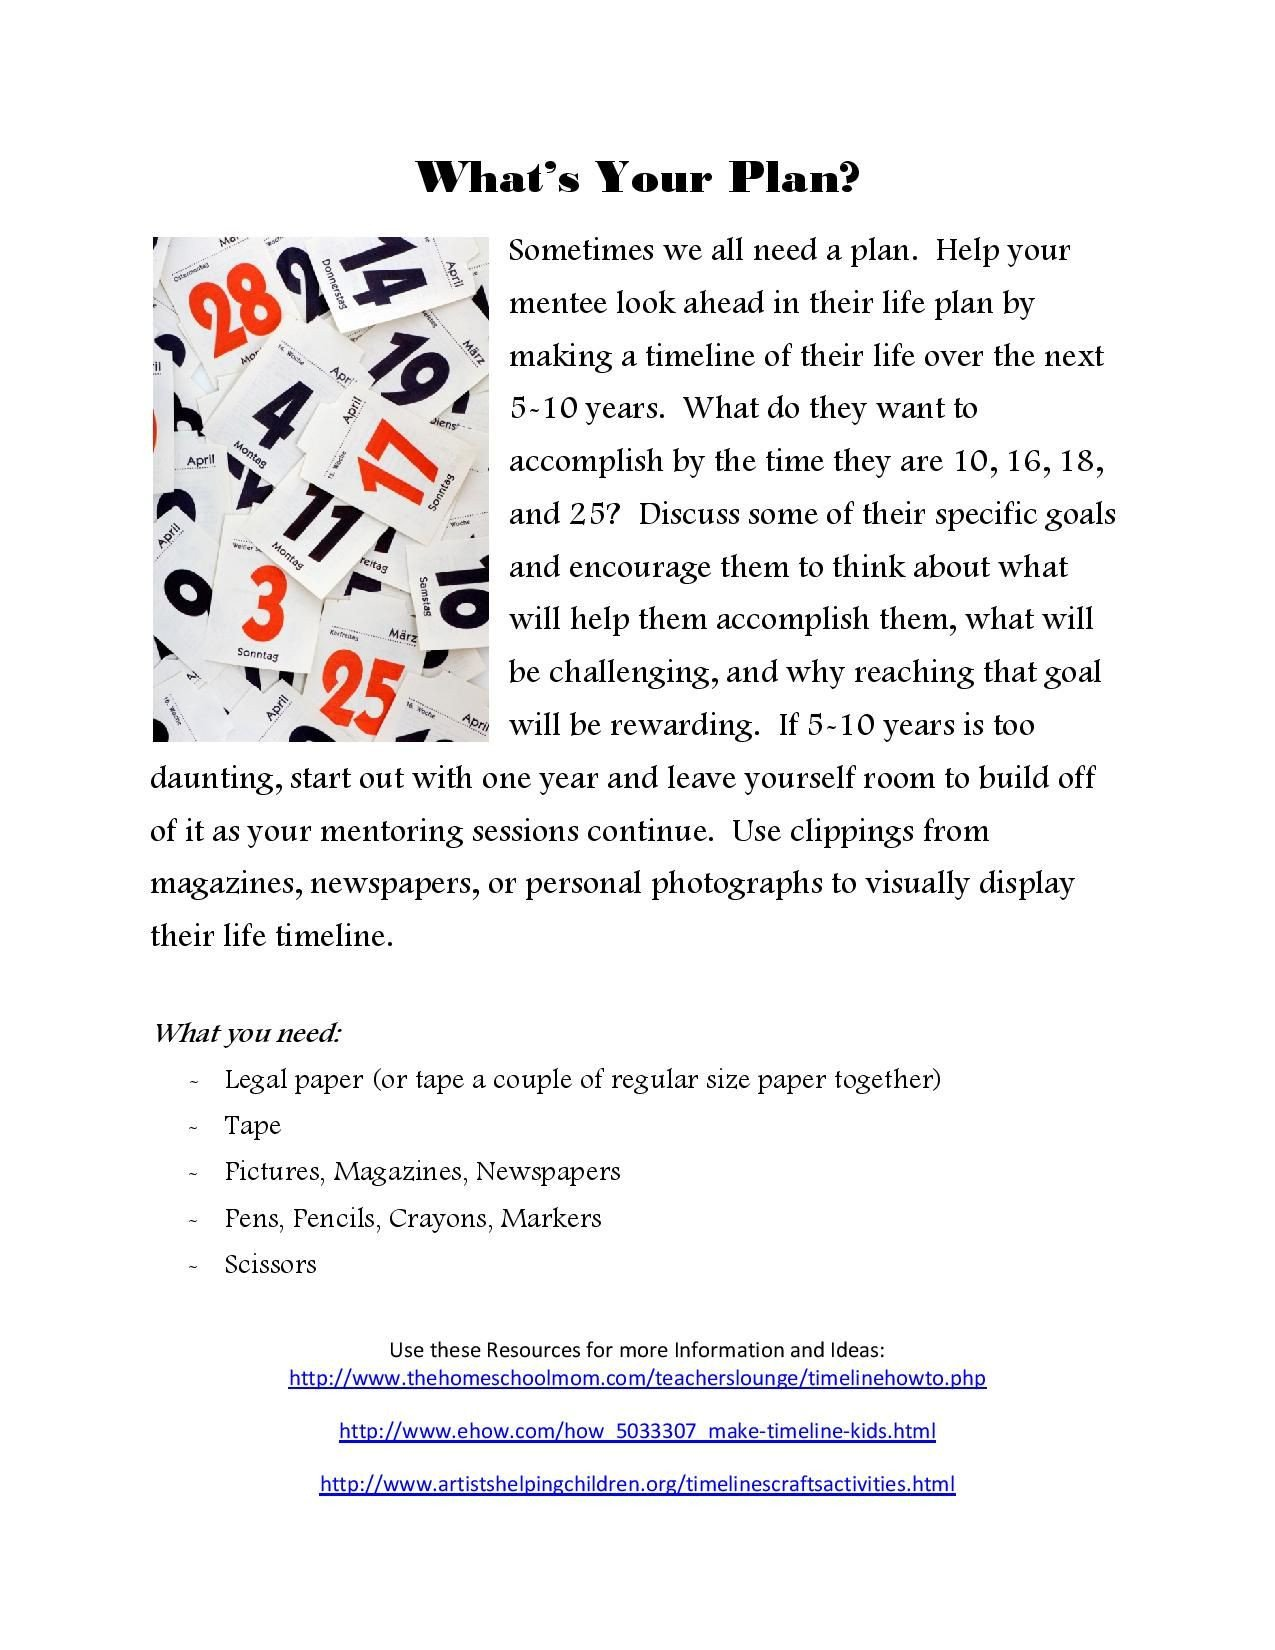 Self Esteem Worksheets for Youth Mentoring Worksheets for Youth